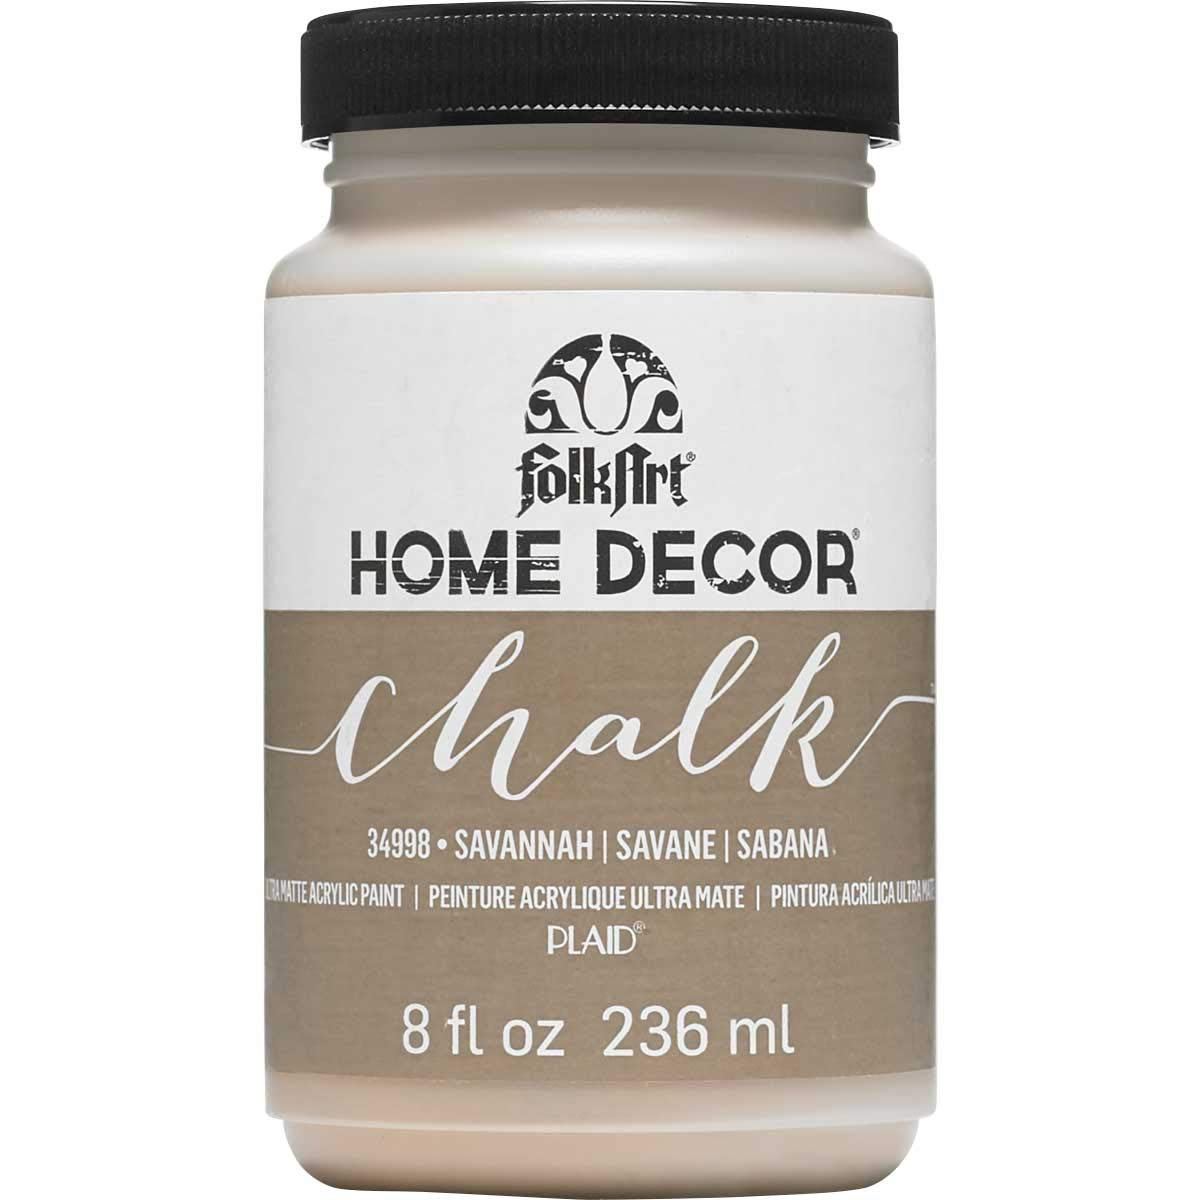 FolkArt Home Decor Chalk Furniture & Craft Paint in Assorted Colors (8 Ounce), 34998 Savannah